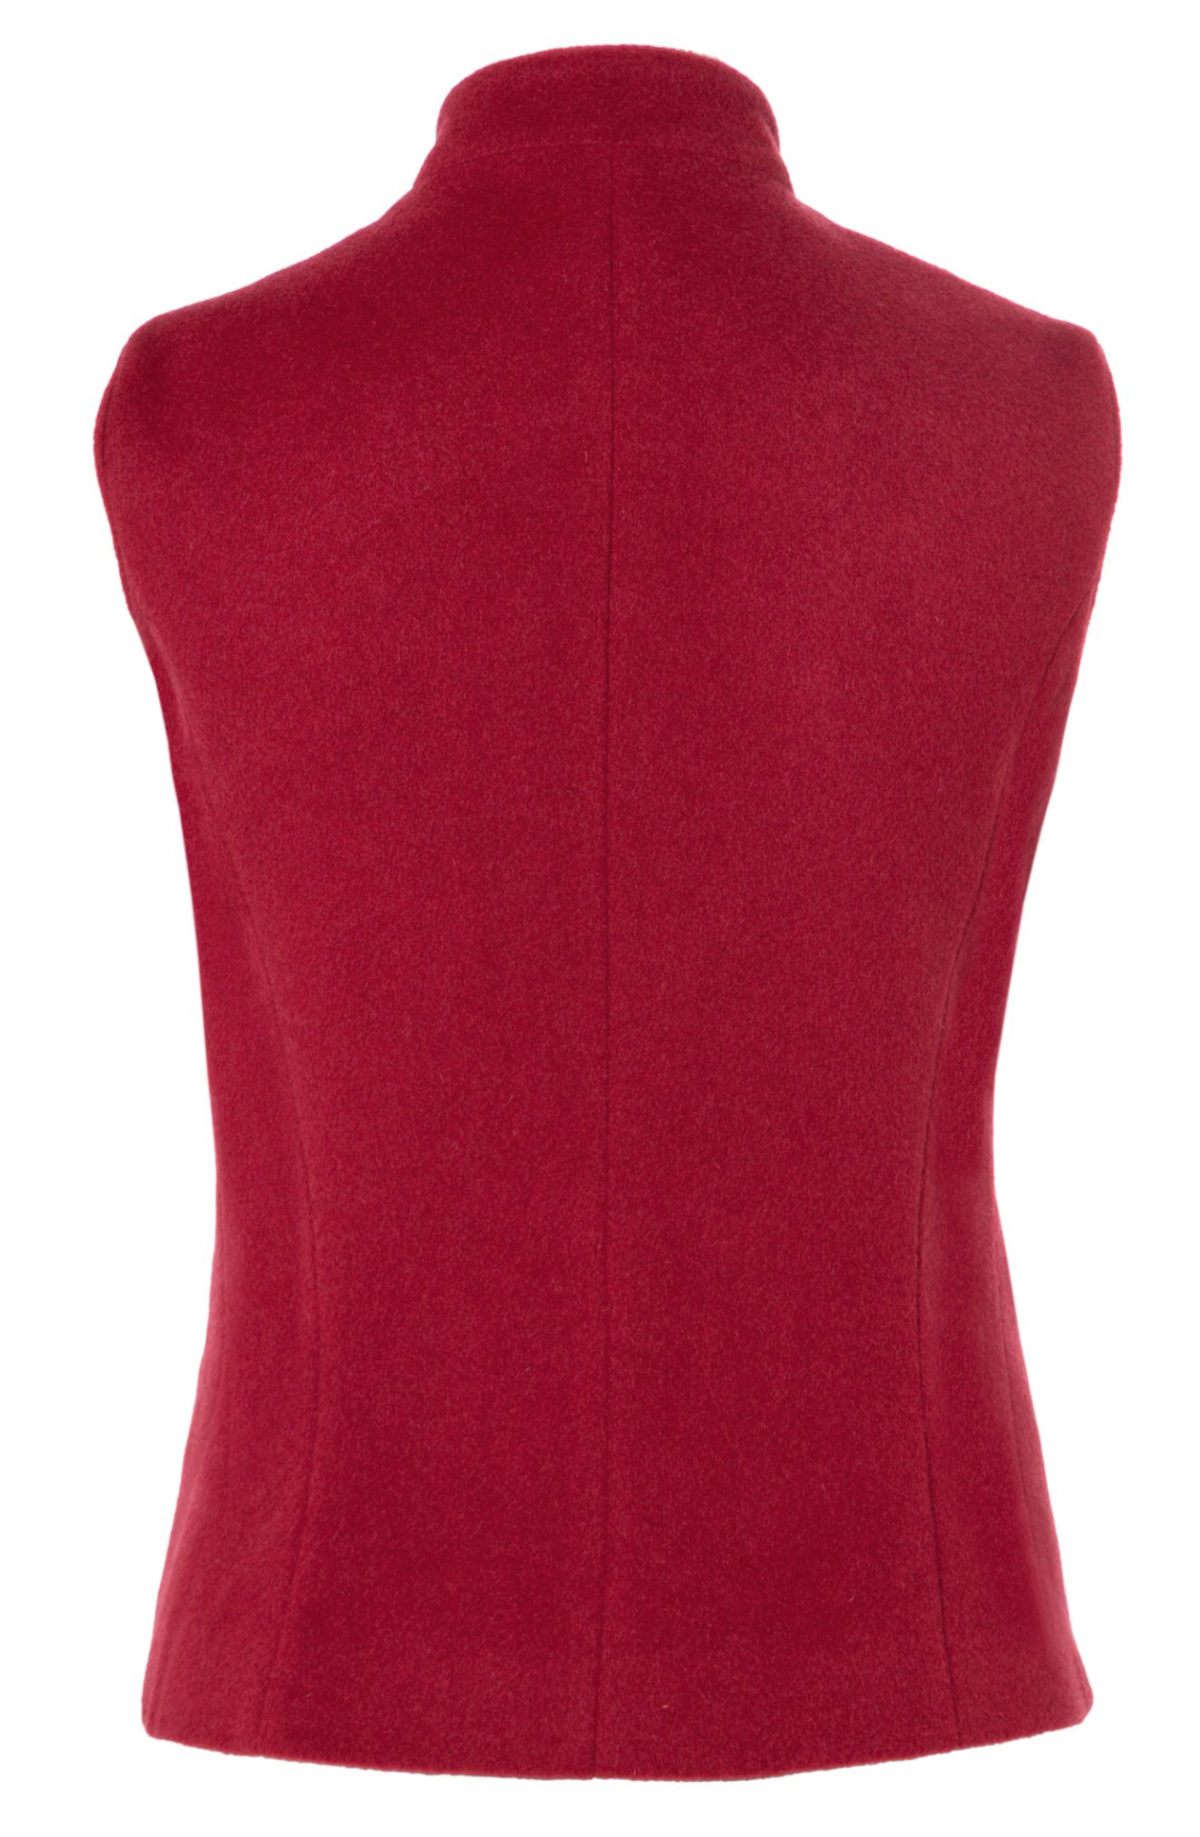 Pip Howeson Annie Waistcoat Back